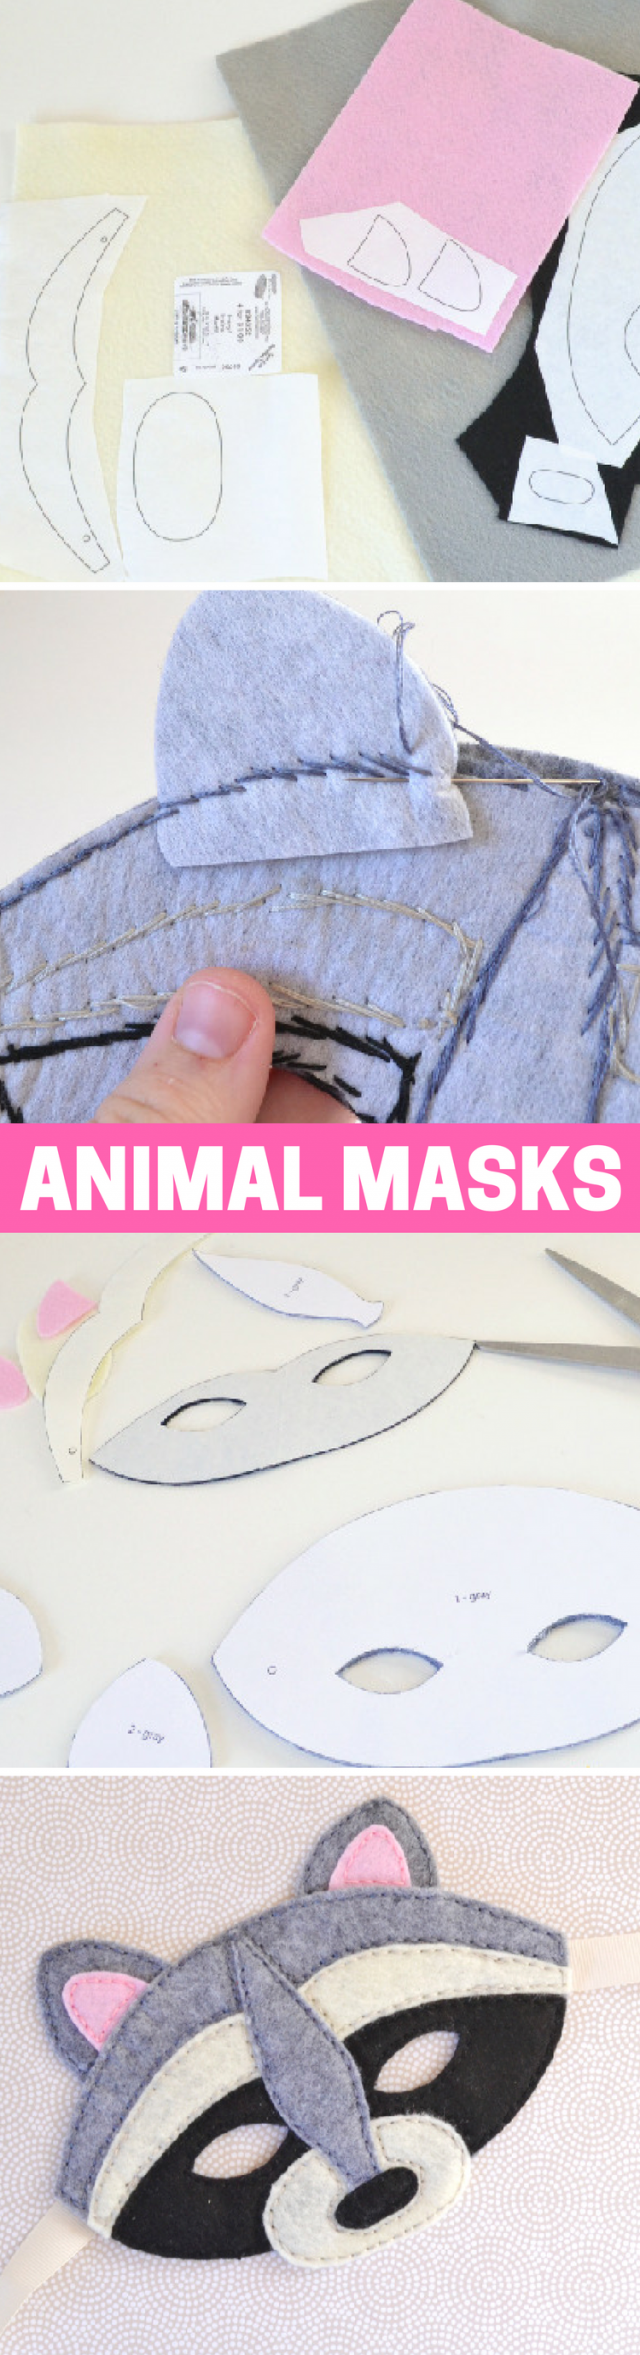 How to Make DIY Felt Animal Masks